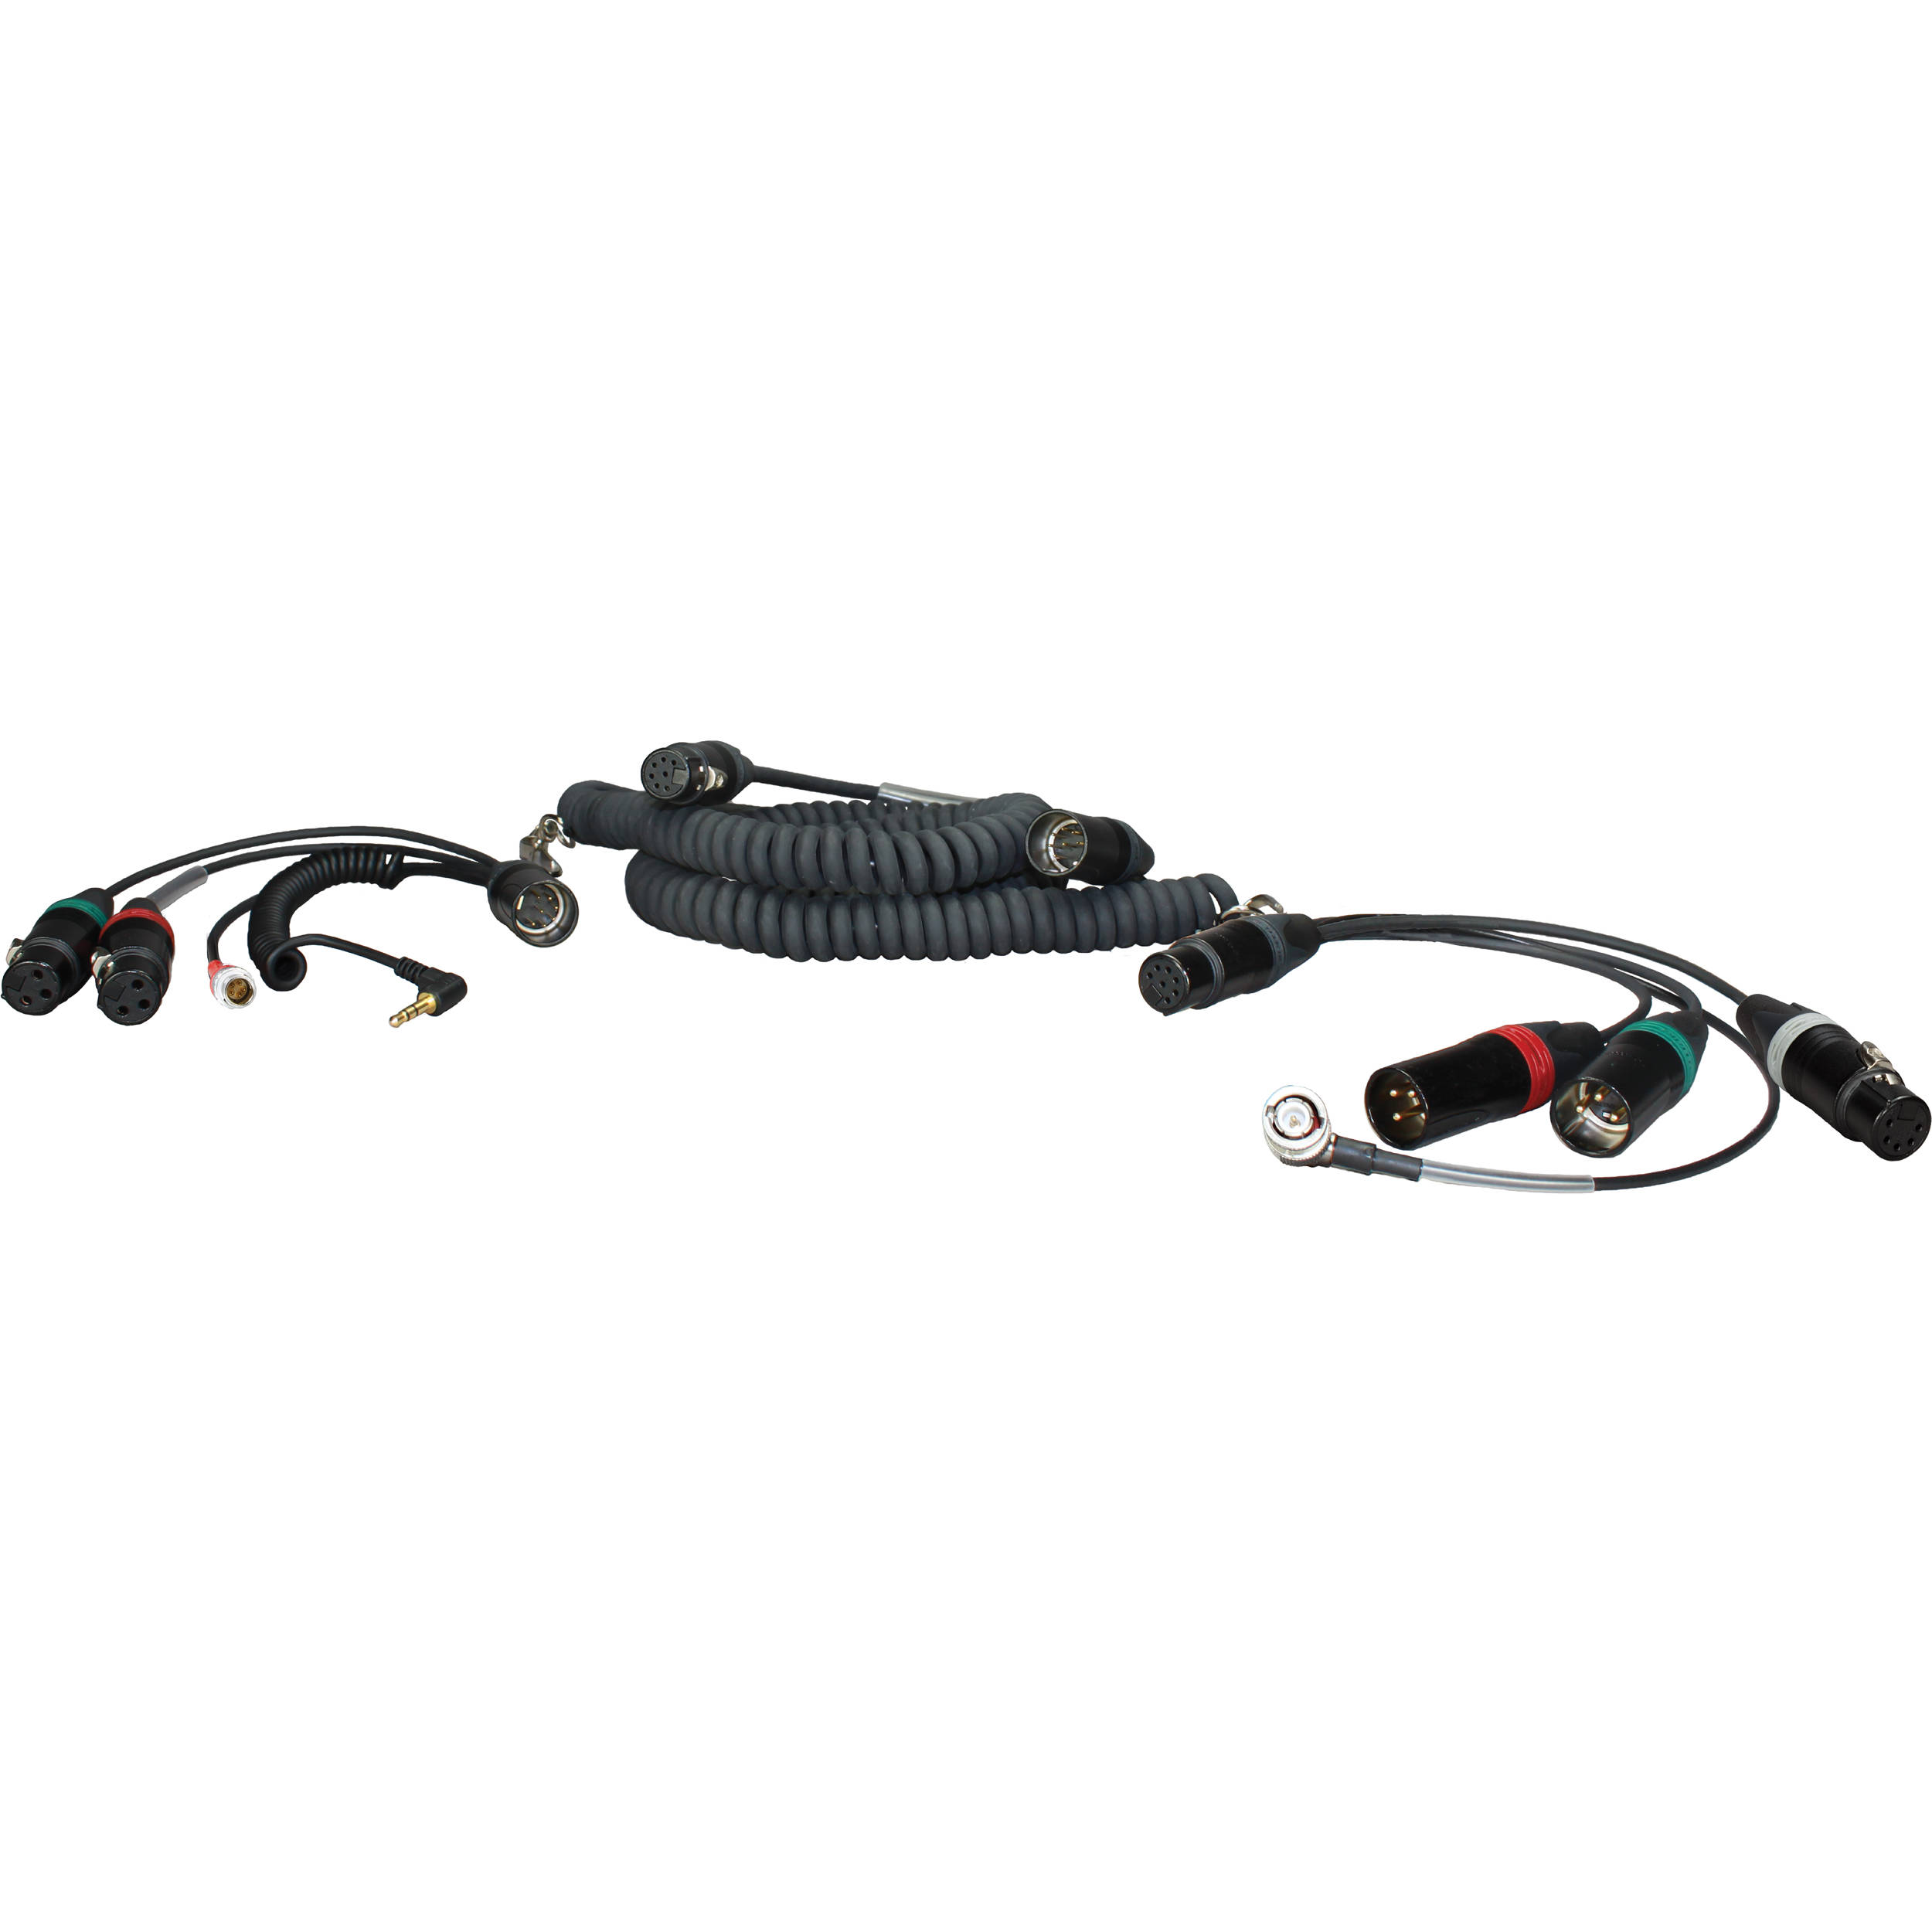 Ambient Recording Coiled Breakaway Cable For Sound Hbs664y7 5